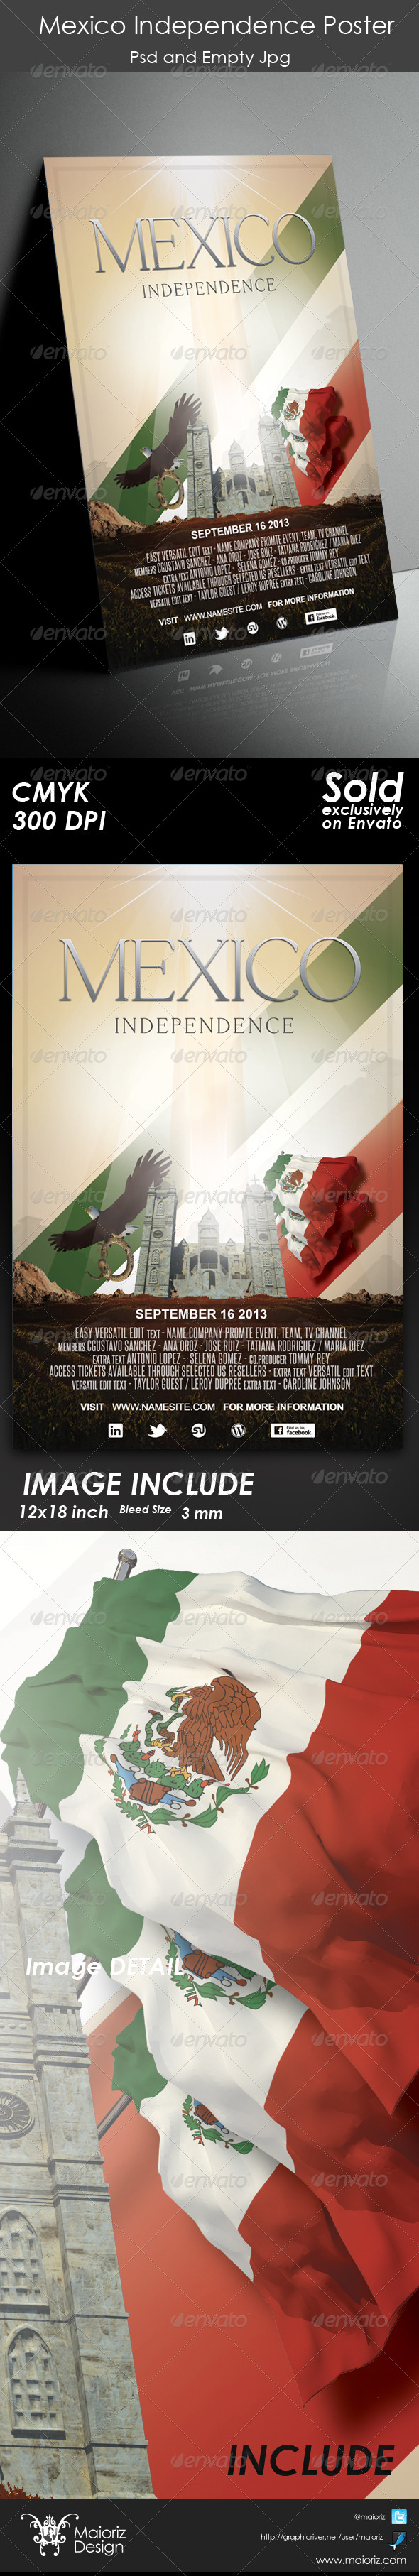 GraphicRiver Mexico Independence Poster 5367073